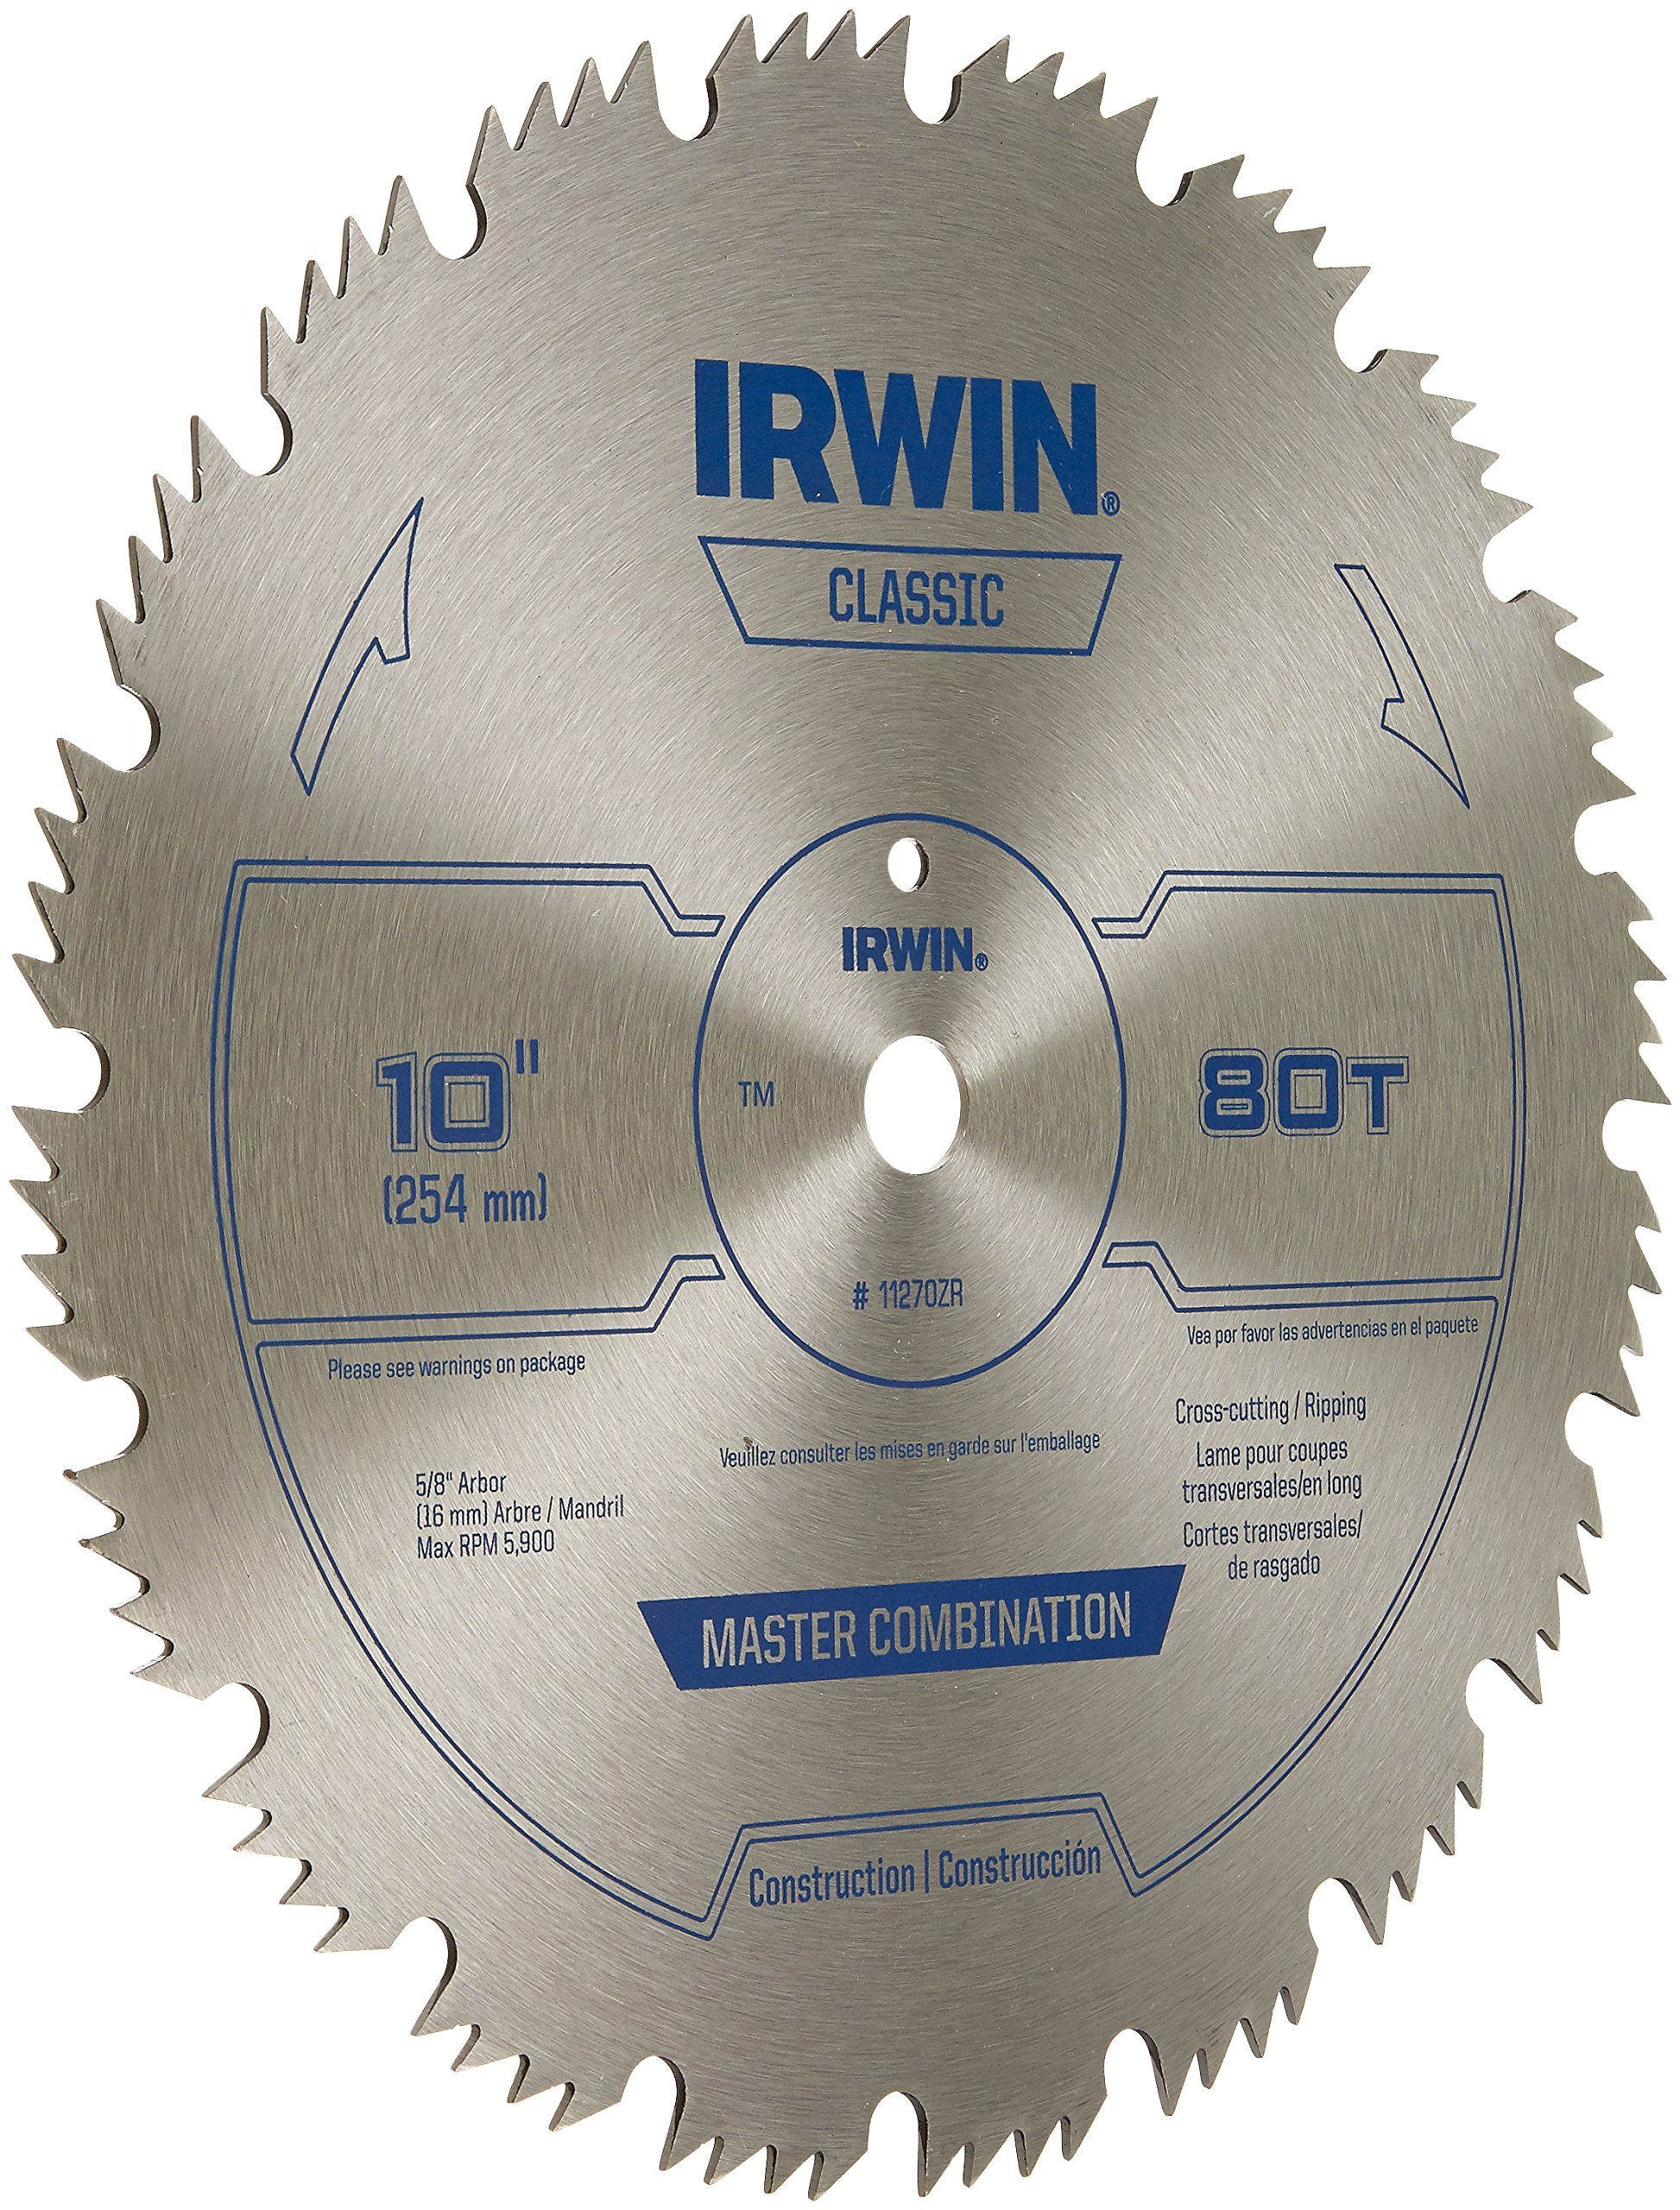 Irwin Tools Steel Table Miter Circular Saw Blade 10inch 80 Tooth 11270zr Want Extra Information Click On The Im Circular Saw Blades Steel Table Tool Steel